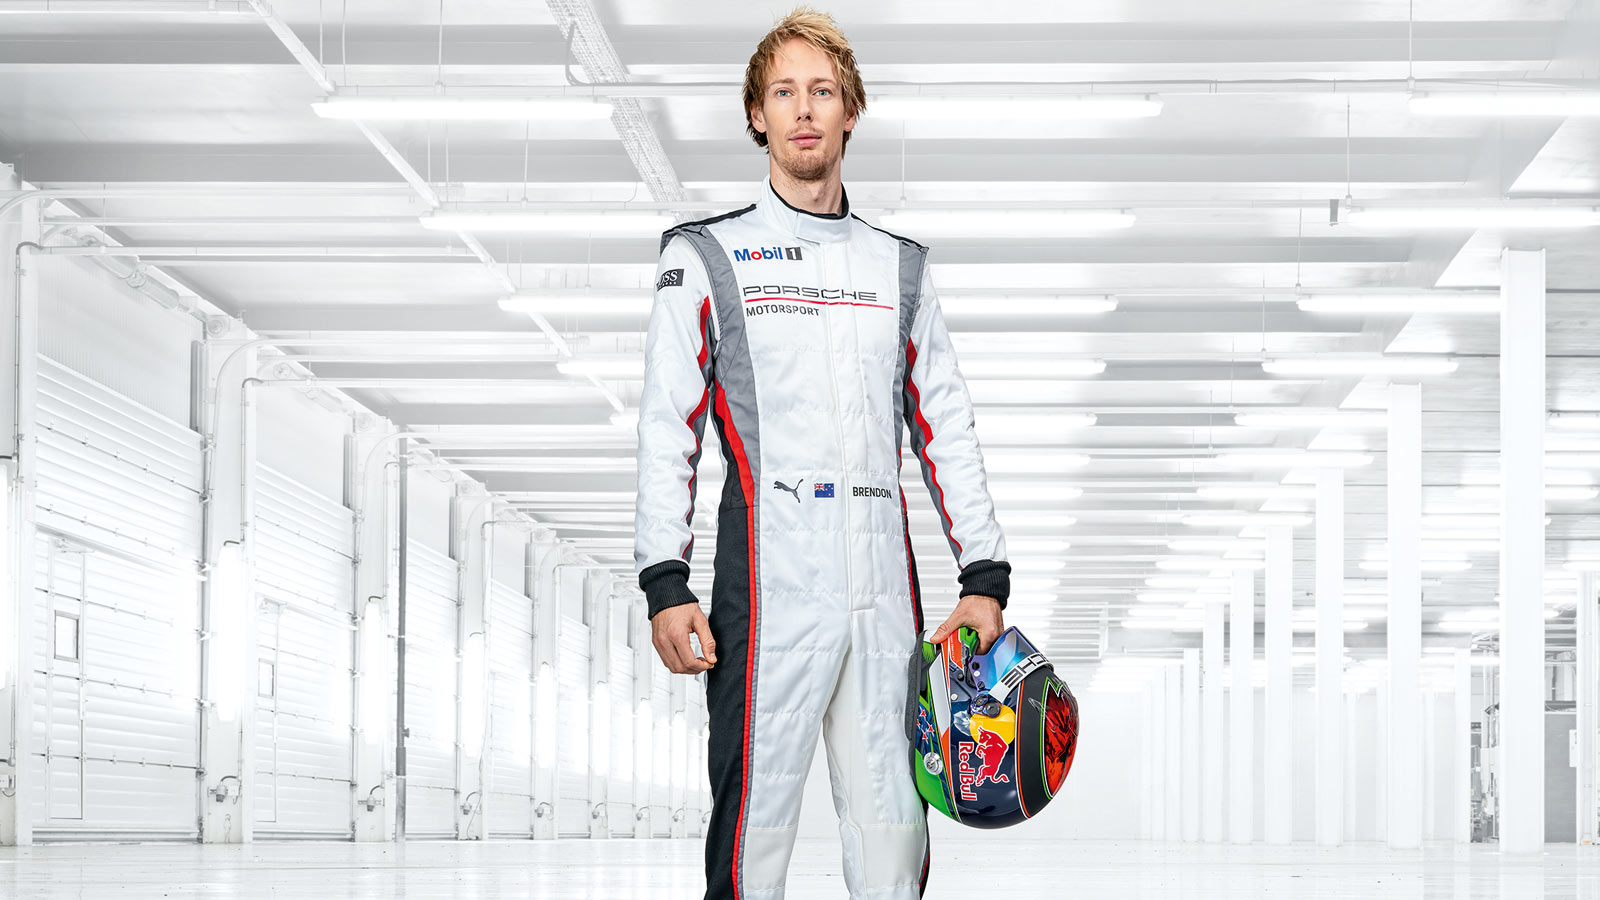 Porsche - Brendon Hartley NZL